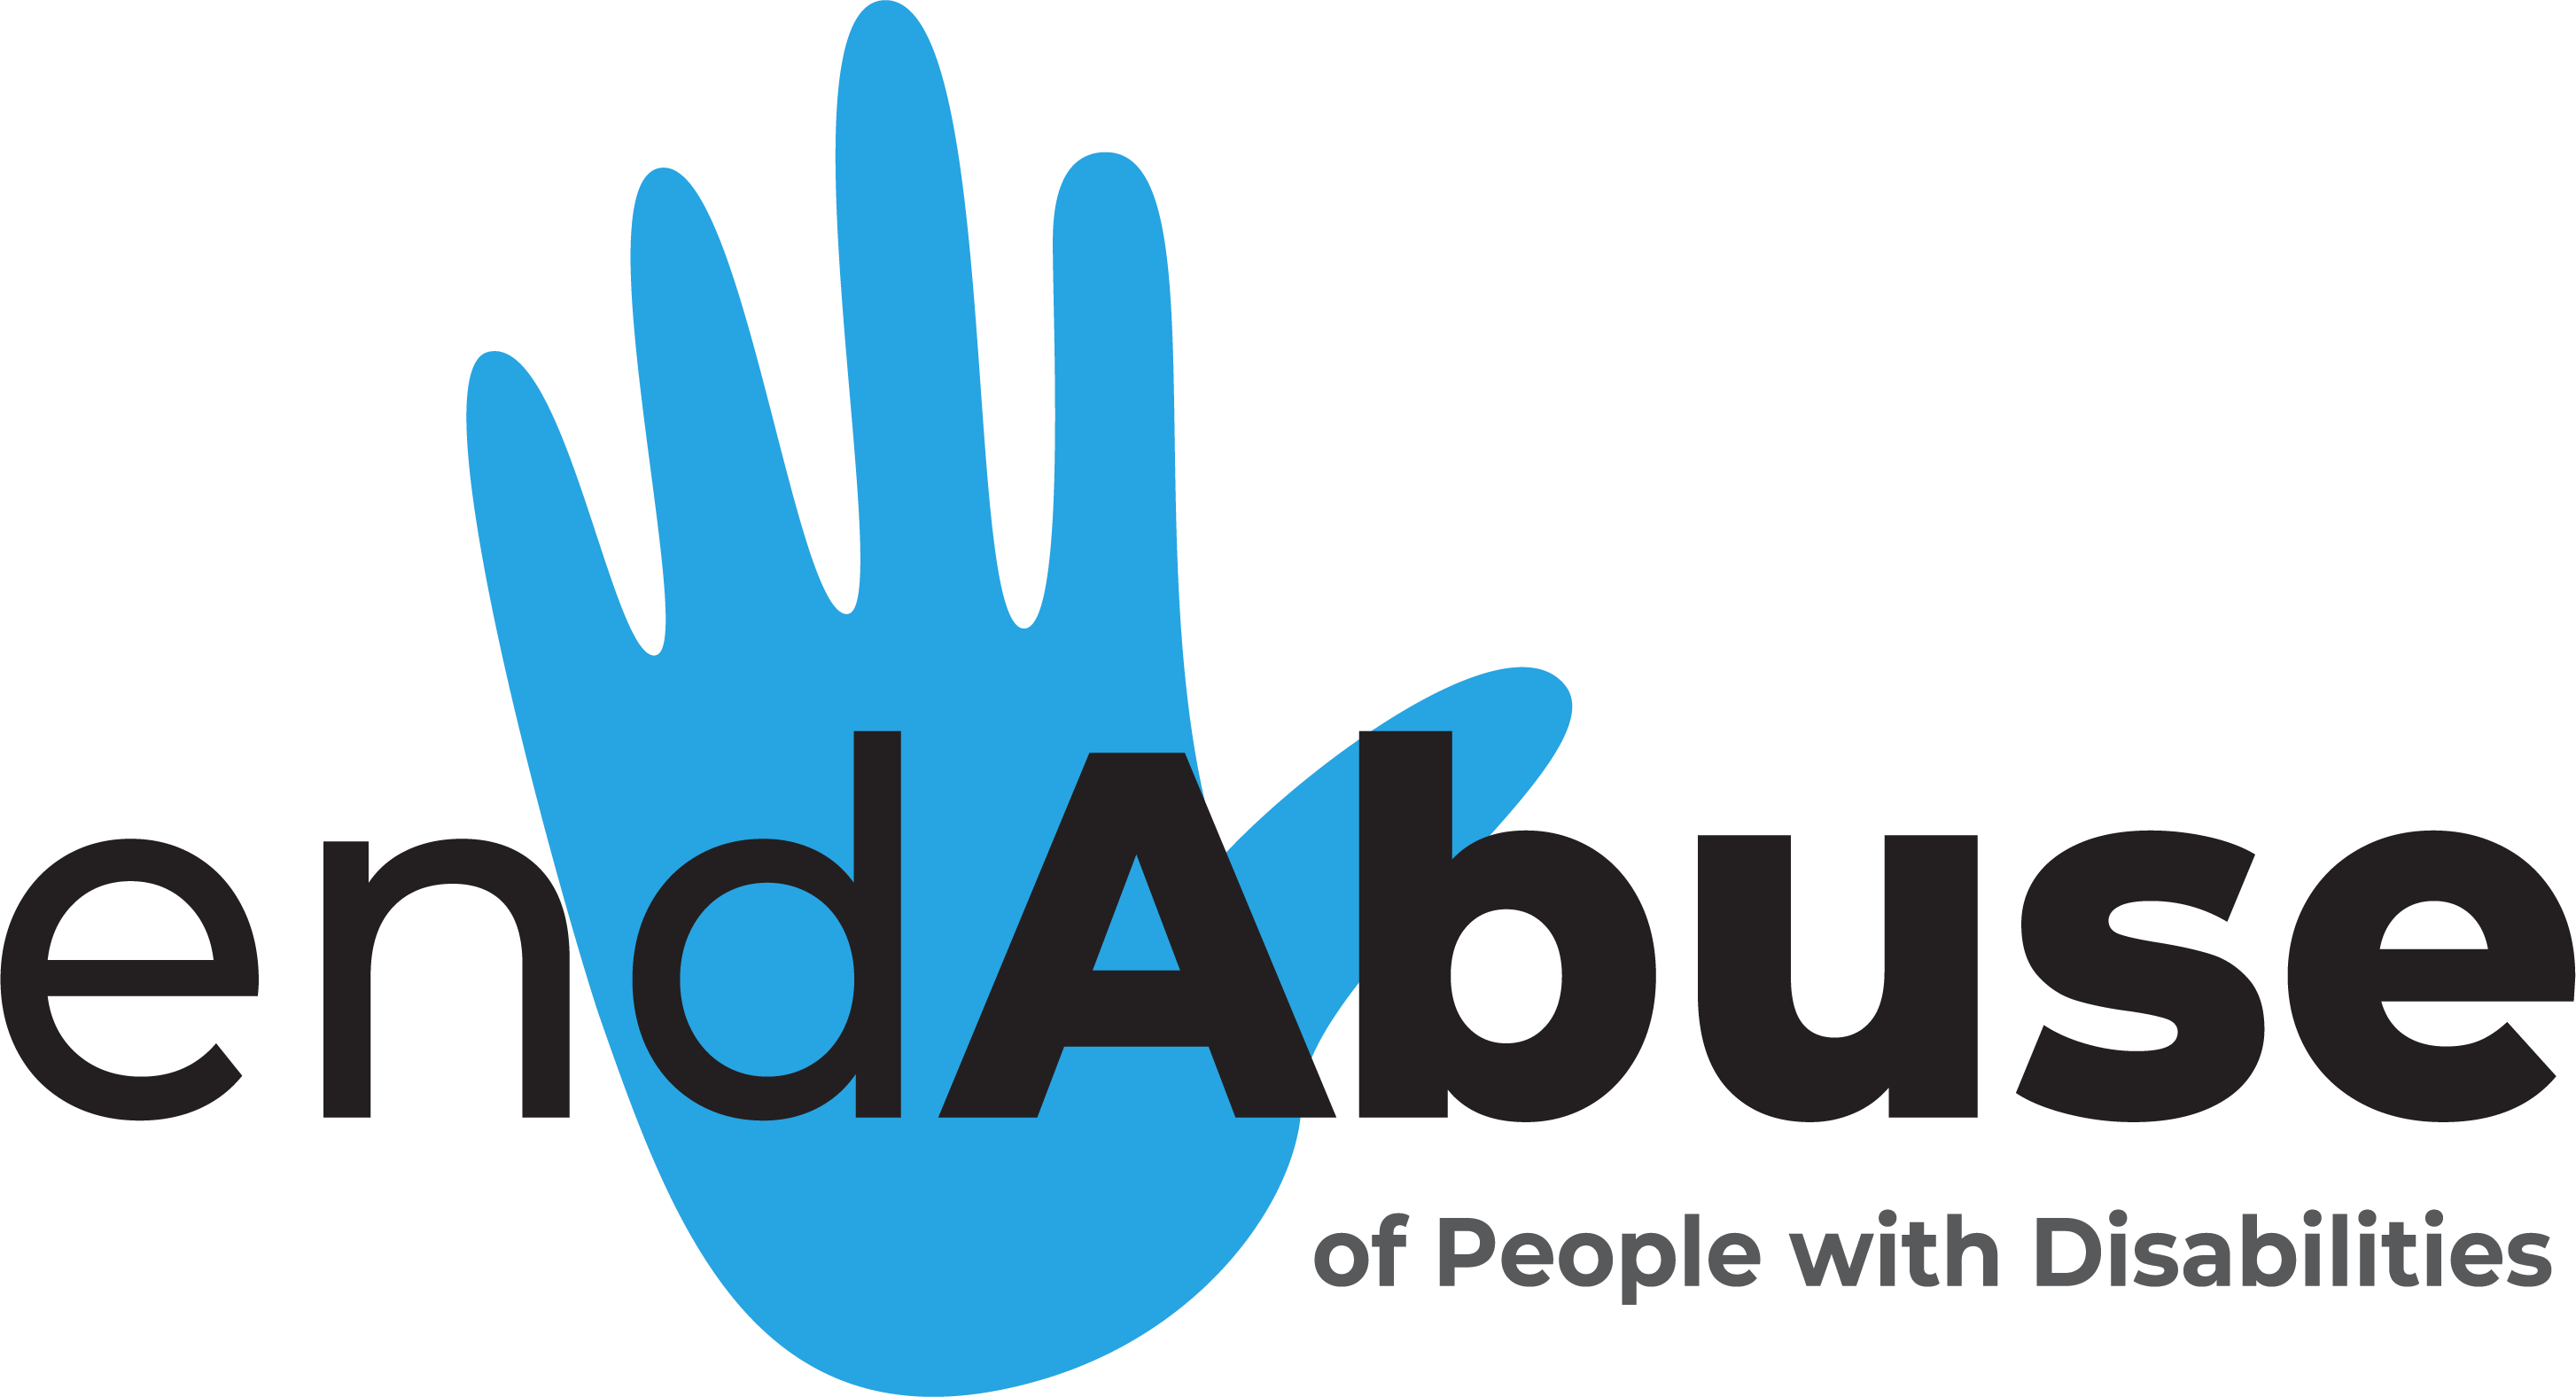 end abuse logo